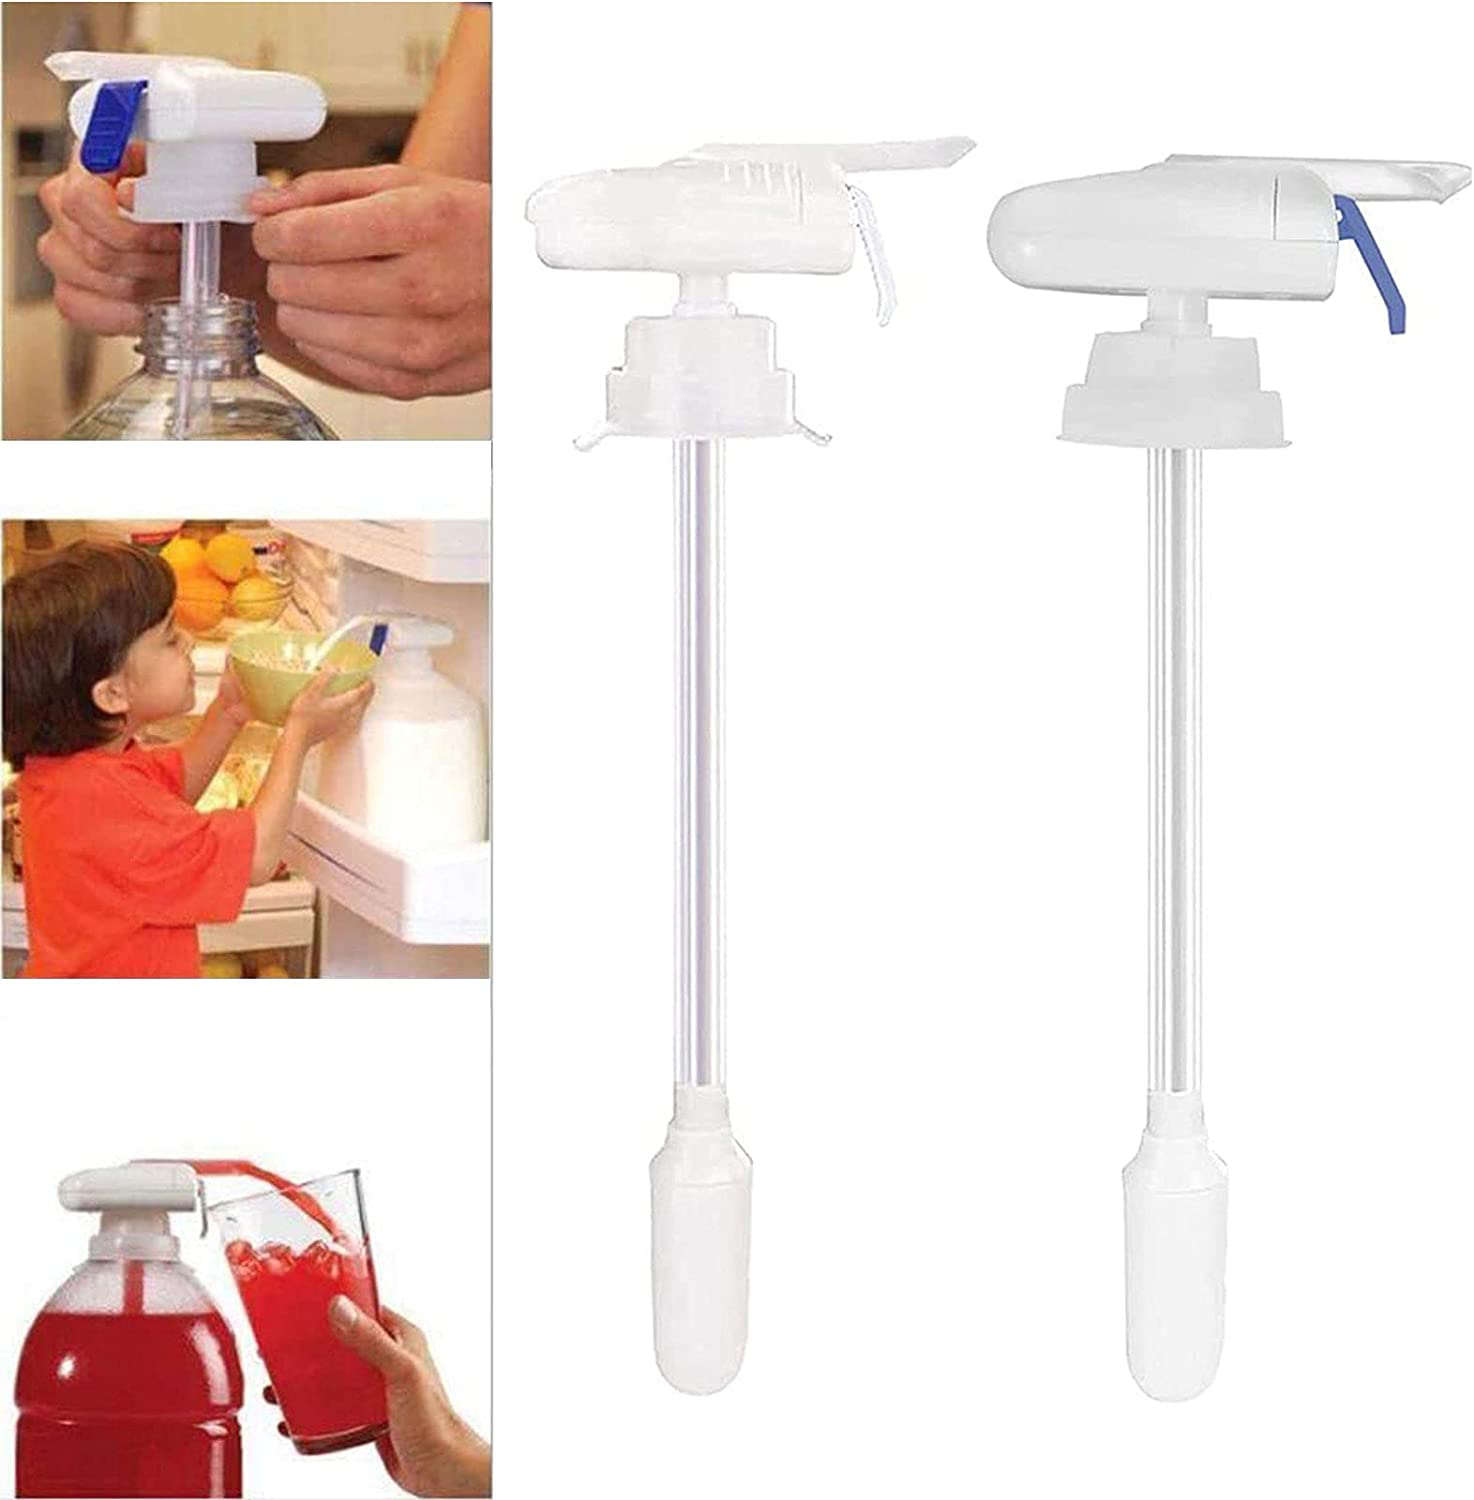 SIMPLICHIC Automatic Drink Dispenser Gadget, The Magic Tap Electric Automatic Water & Milk Dispenser Fridge Tap, Portable Plastic Spill Proof Beverage Pump Dispenser Straw for Juice, Beer (Both)